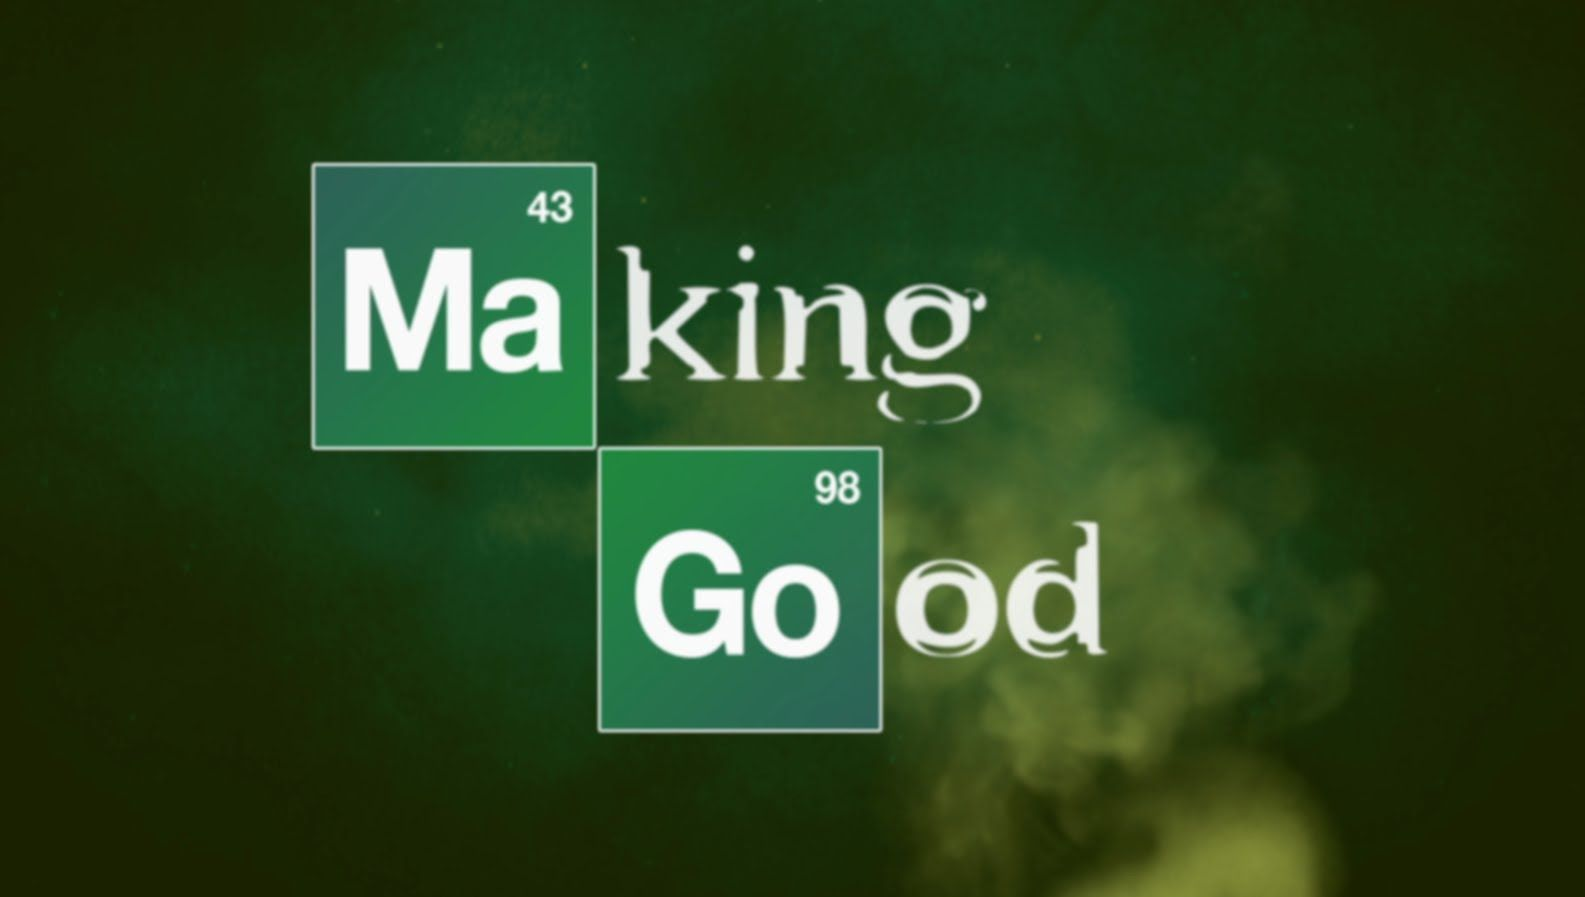 Bad design logo making good parody imagines an alternate reality for ubreaking bad